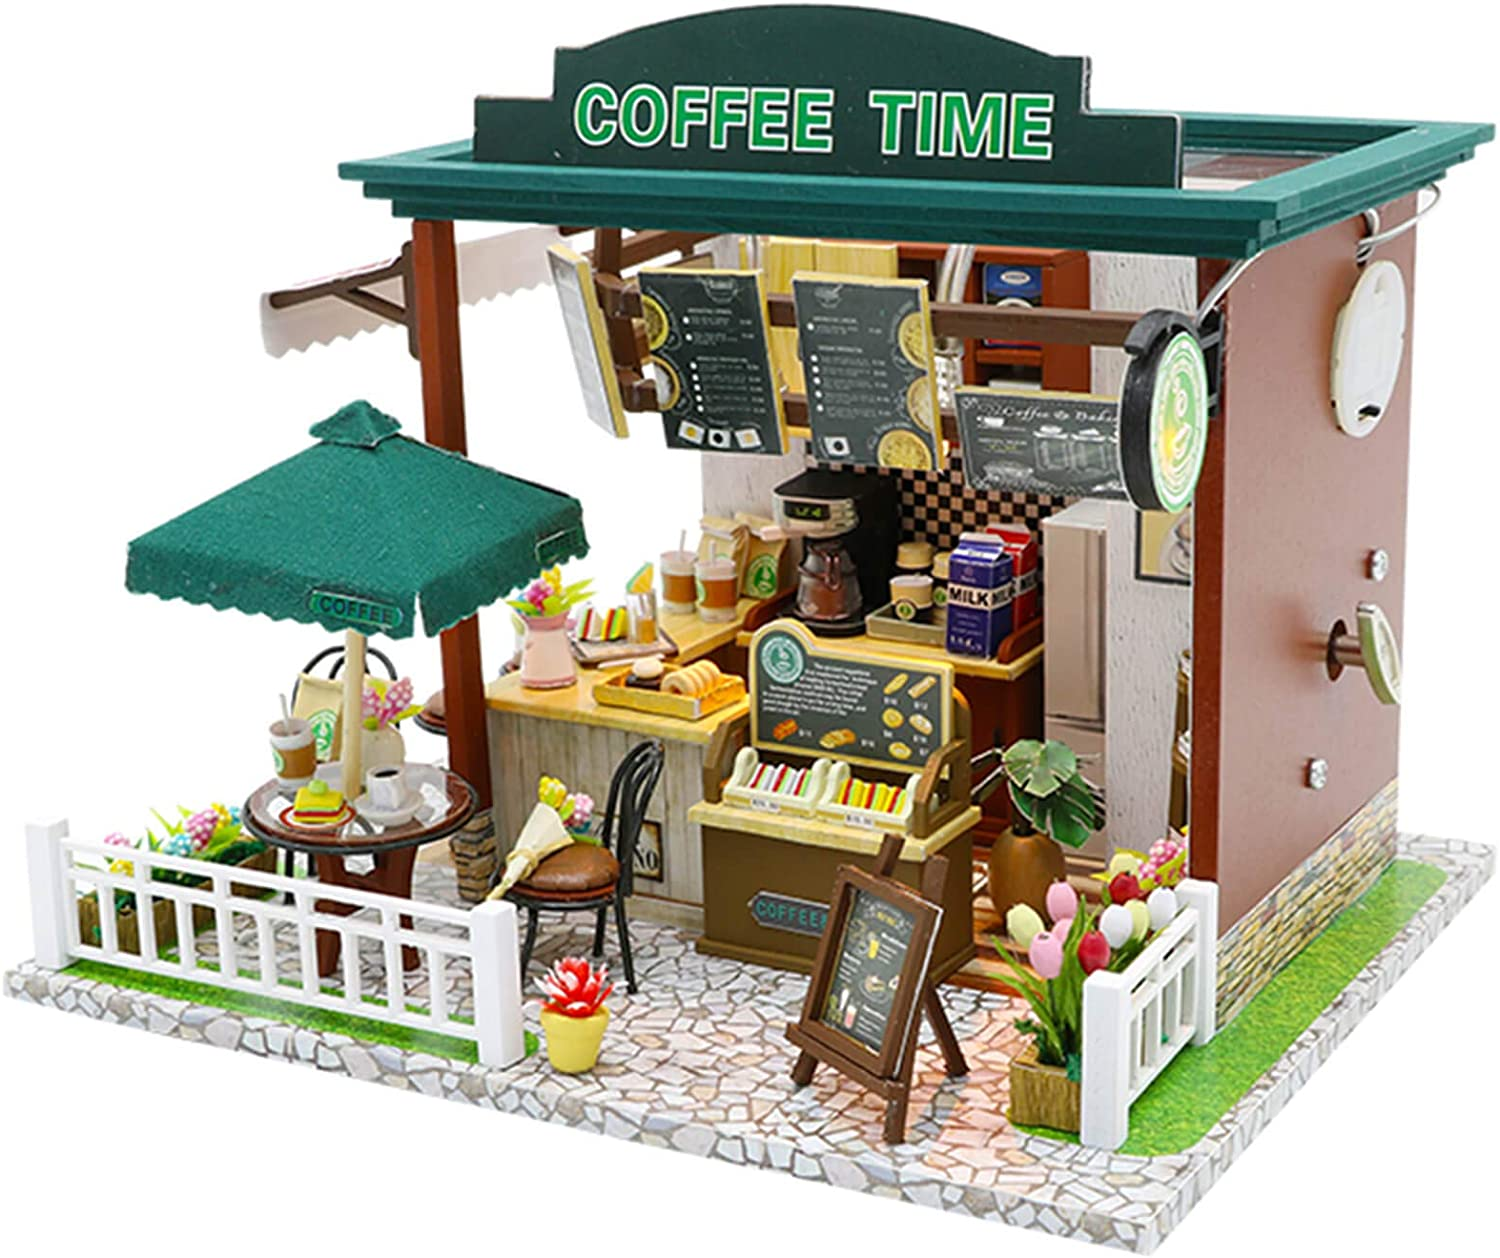 WADILE Dollhouses Wooden DIY Toys Kits Model Handmade Creative Gift Furniture Realistic and Suitable for Children Over 14 Years Old Or with The Help of Adults